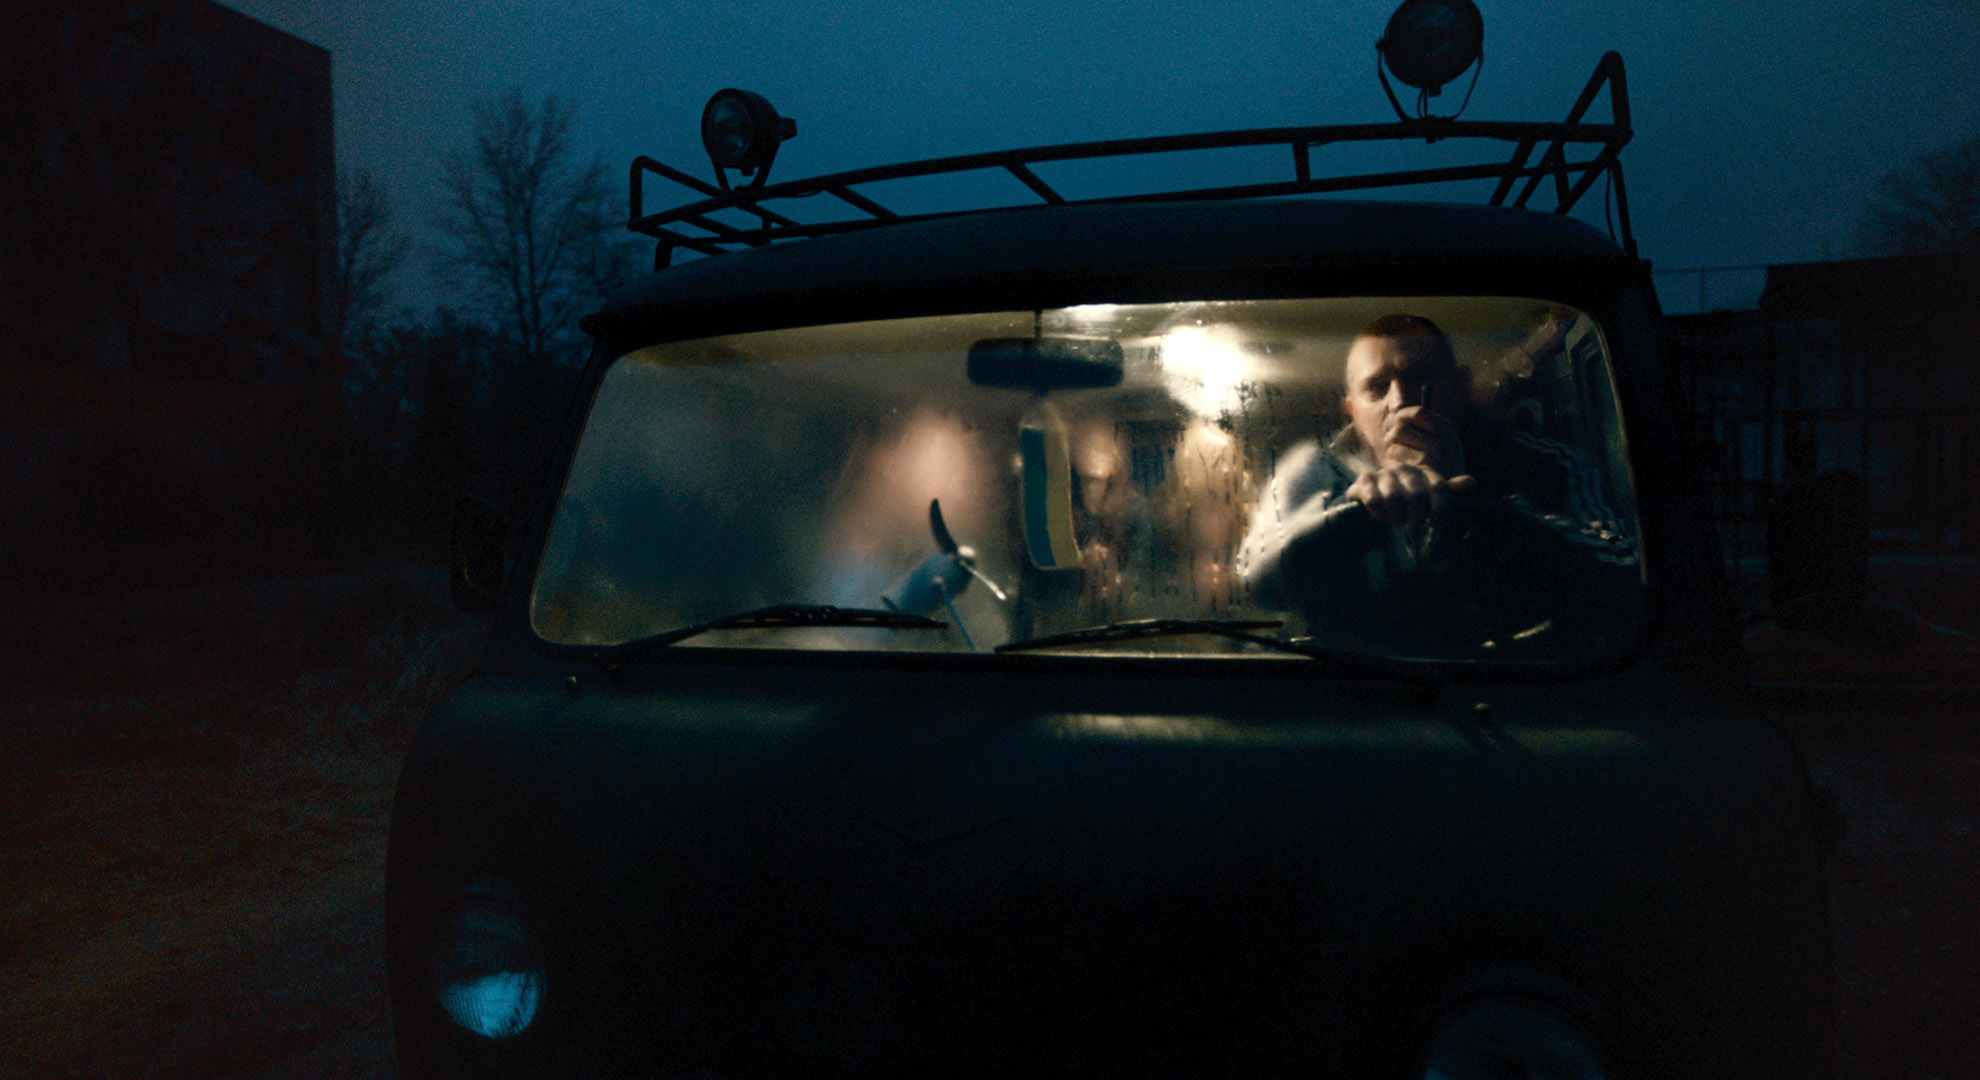 Full Hi-Res Image Gallery Explores The 'Chernobyl Diaries' Disaster